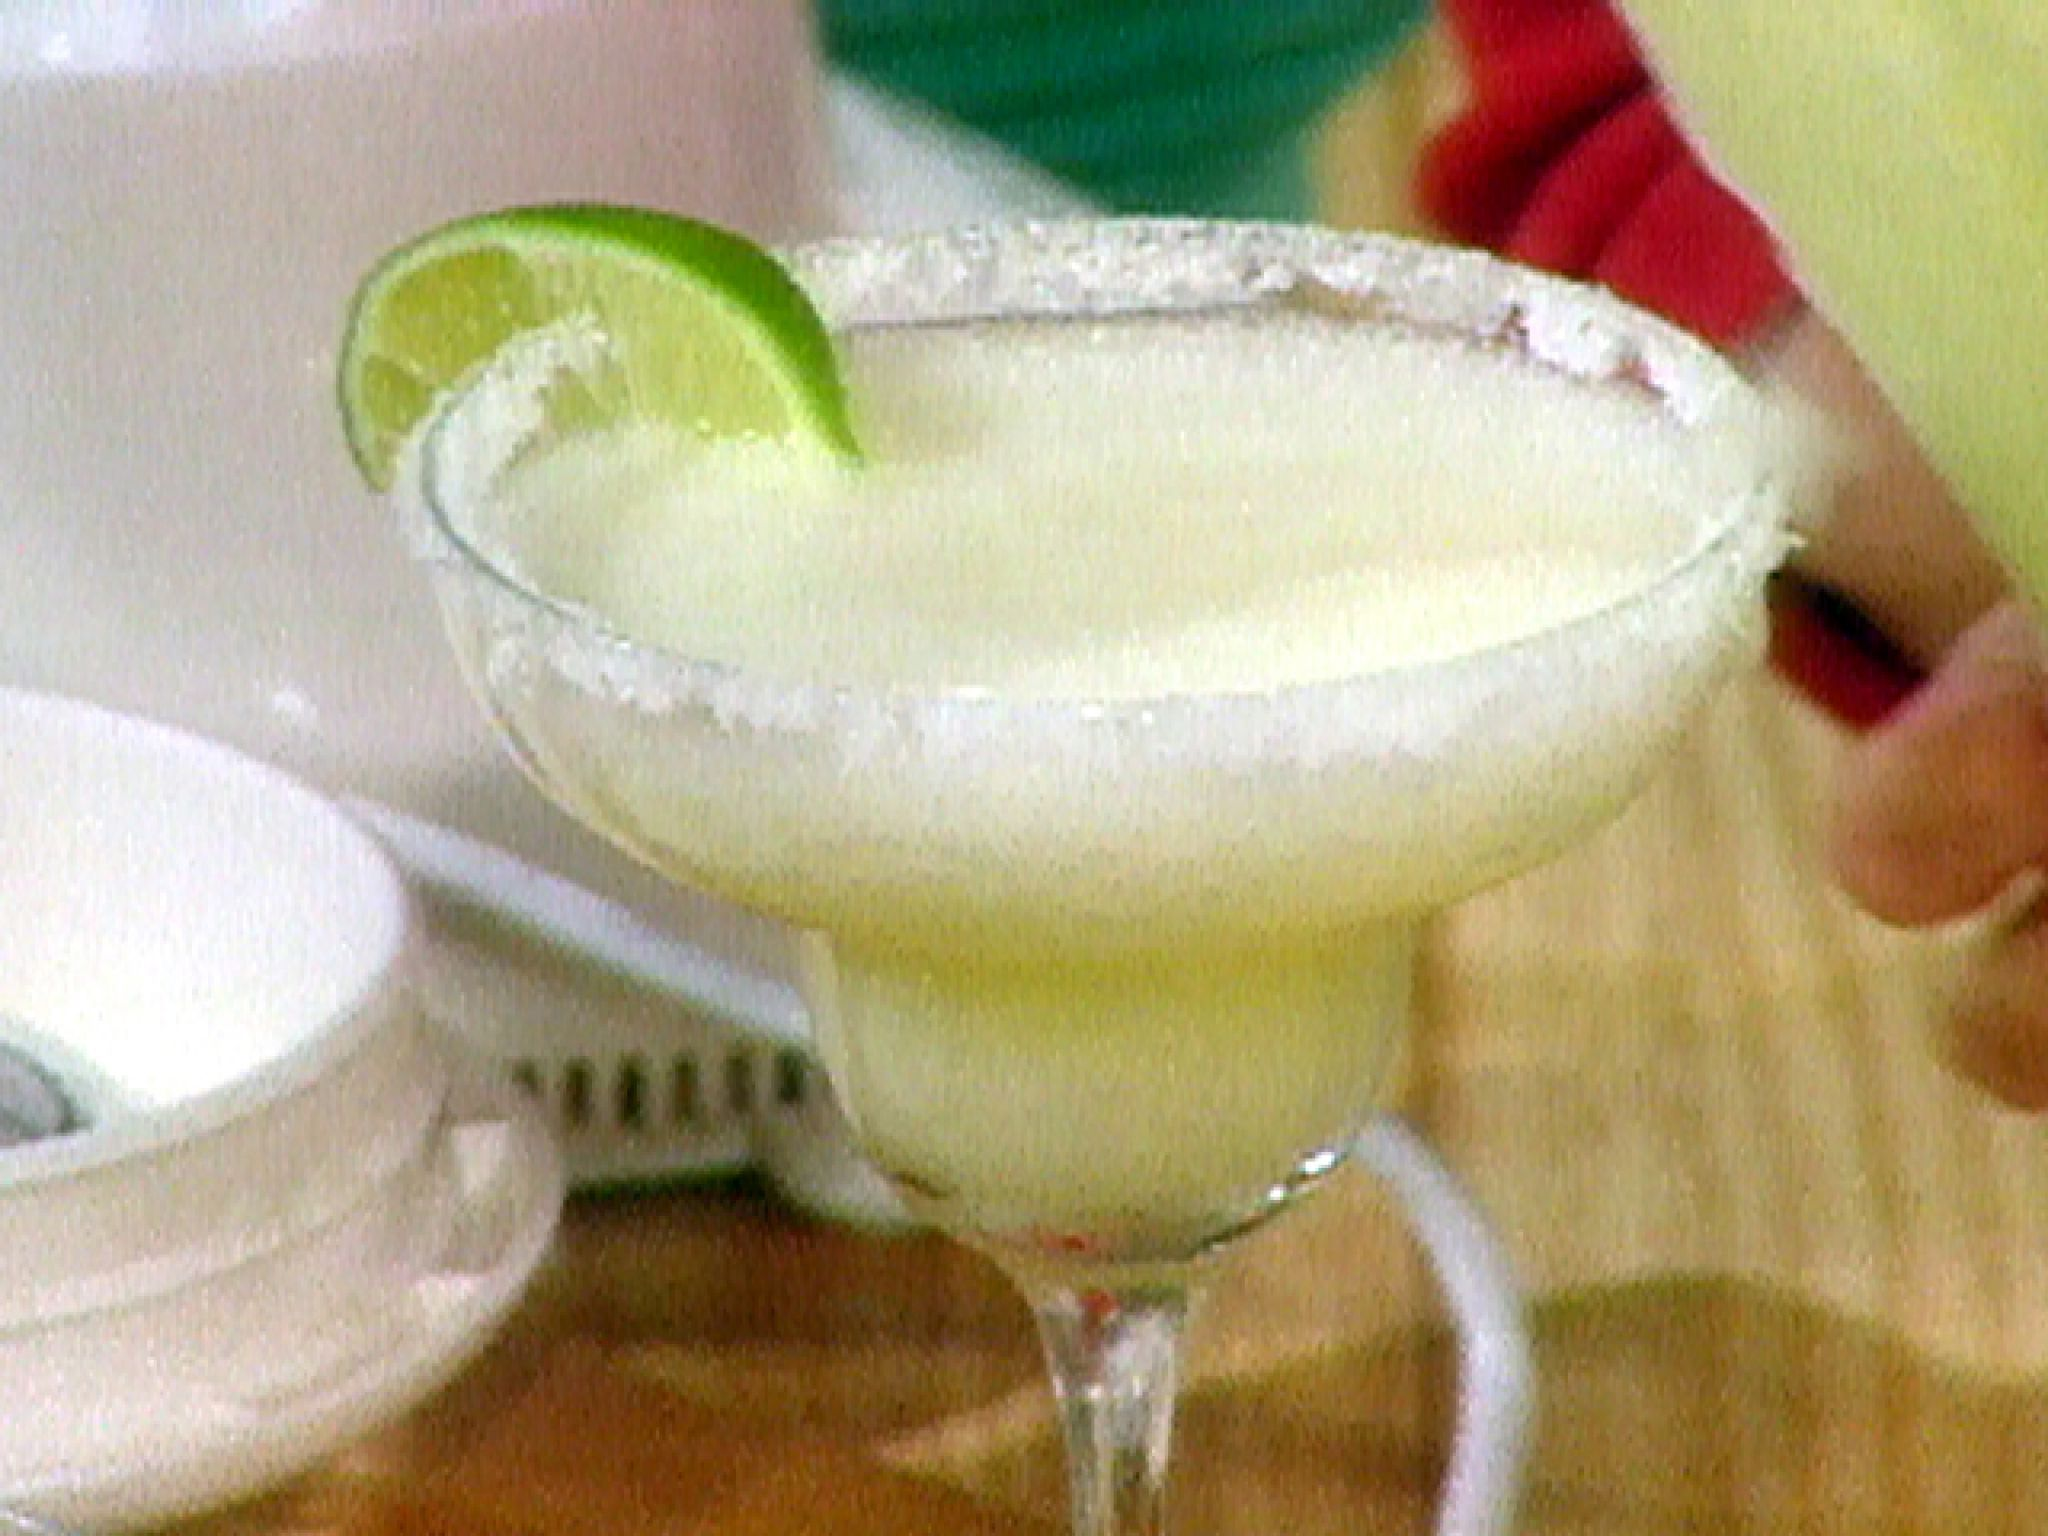 1 6-oz can frozen limeade (2/3 cup)  2/3 cup good quality tequila  1/3 cup triple sec  1/2 cup water  Ice  Combine limeade, tequila, triple sec and water in a blender. Fill to the brim with ice and blend until very smooth, about 1 minute. (Don't under blend, or mixture will be chunky rather than smooth). Serves 4.